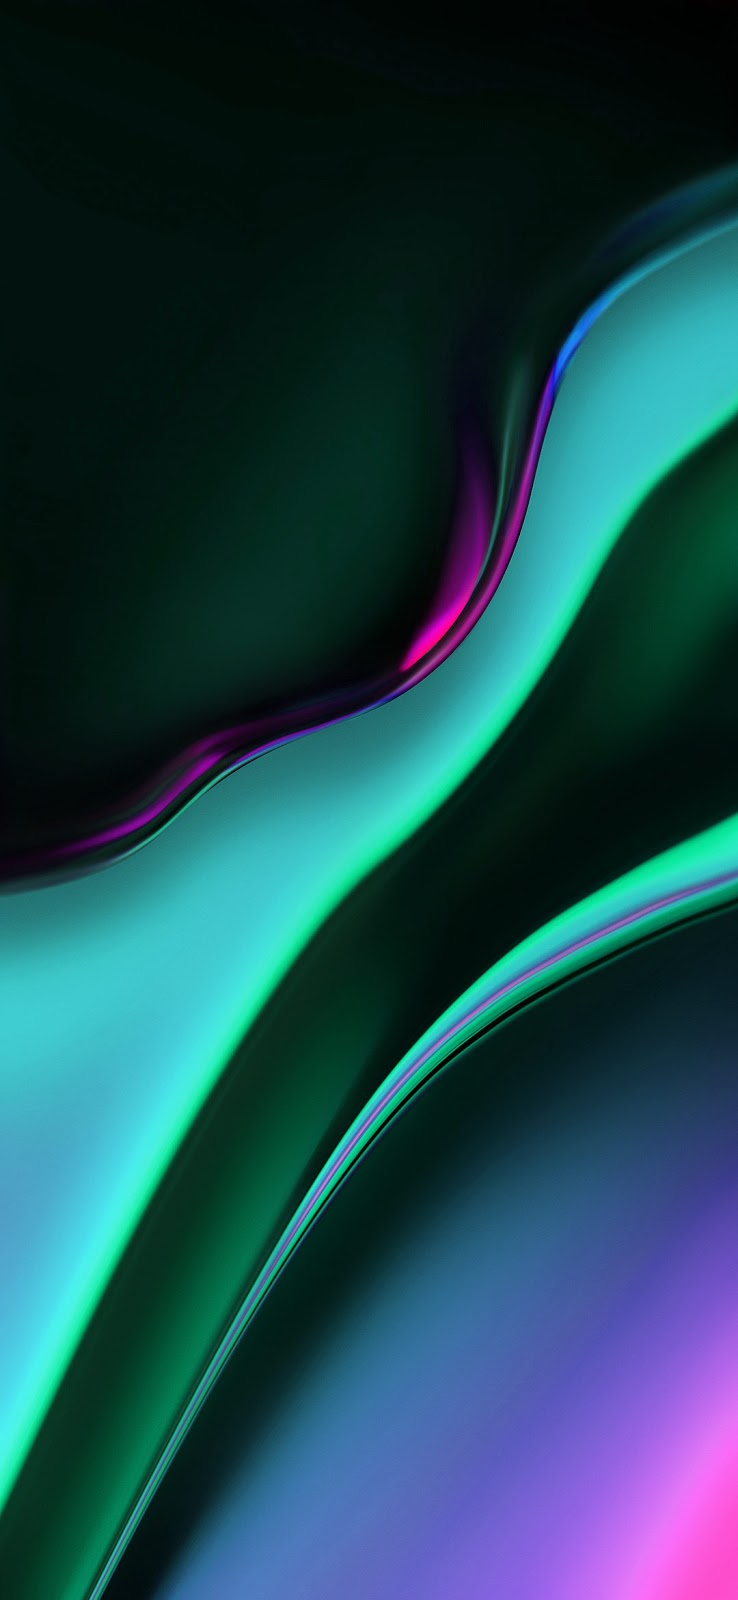 oneplus 6 HD wallpaper